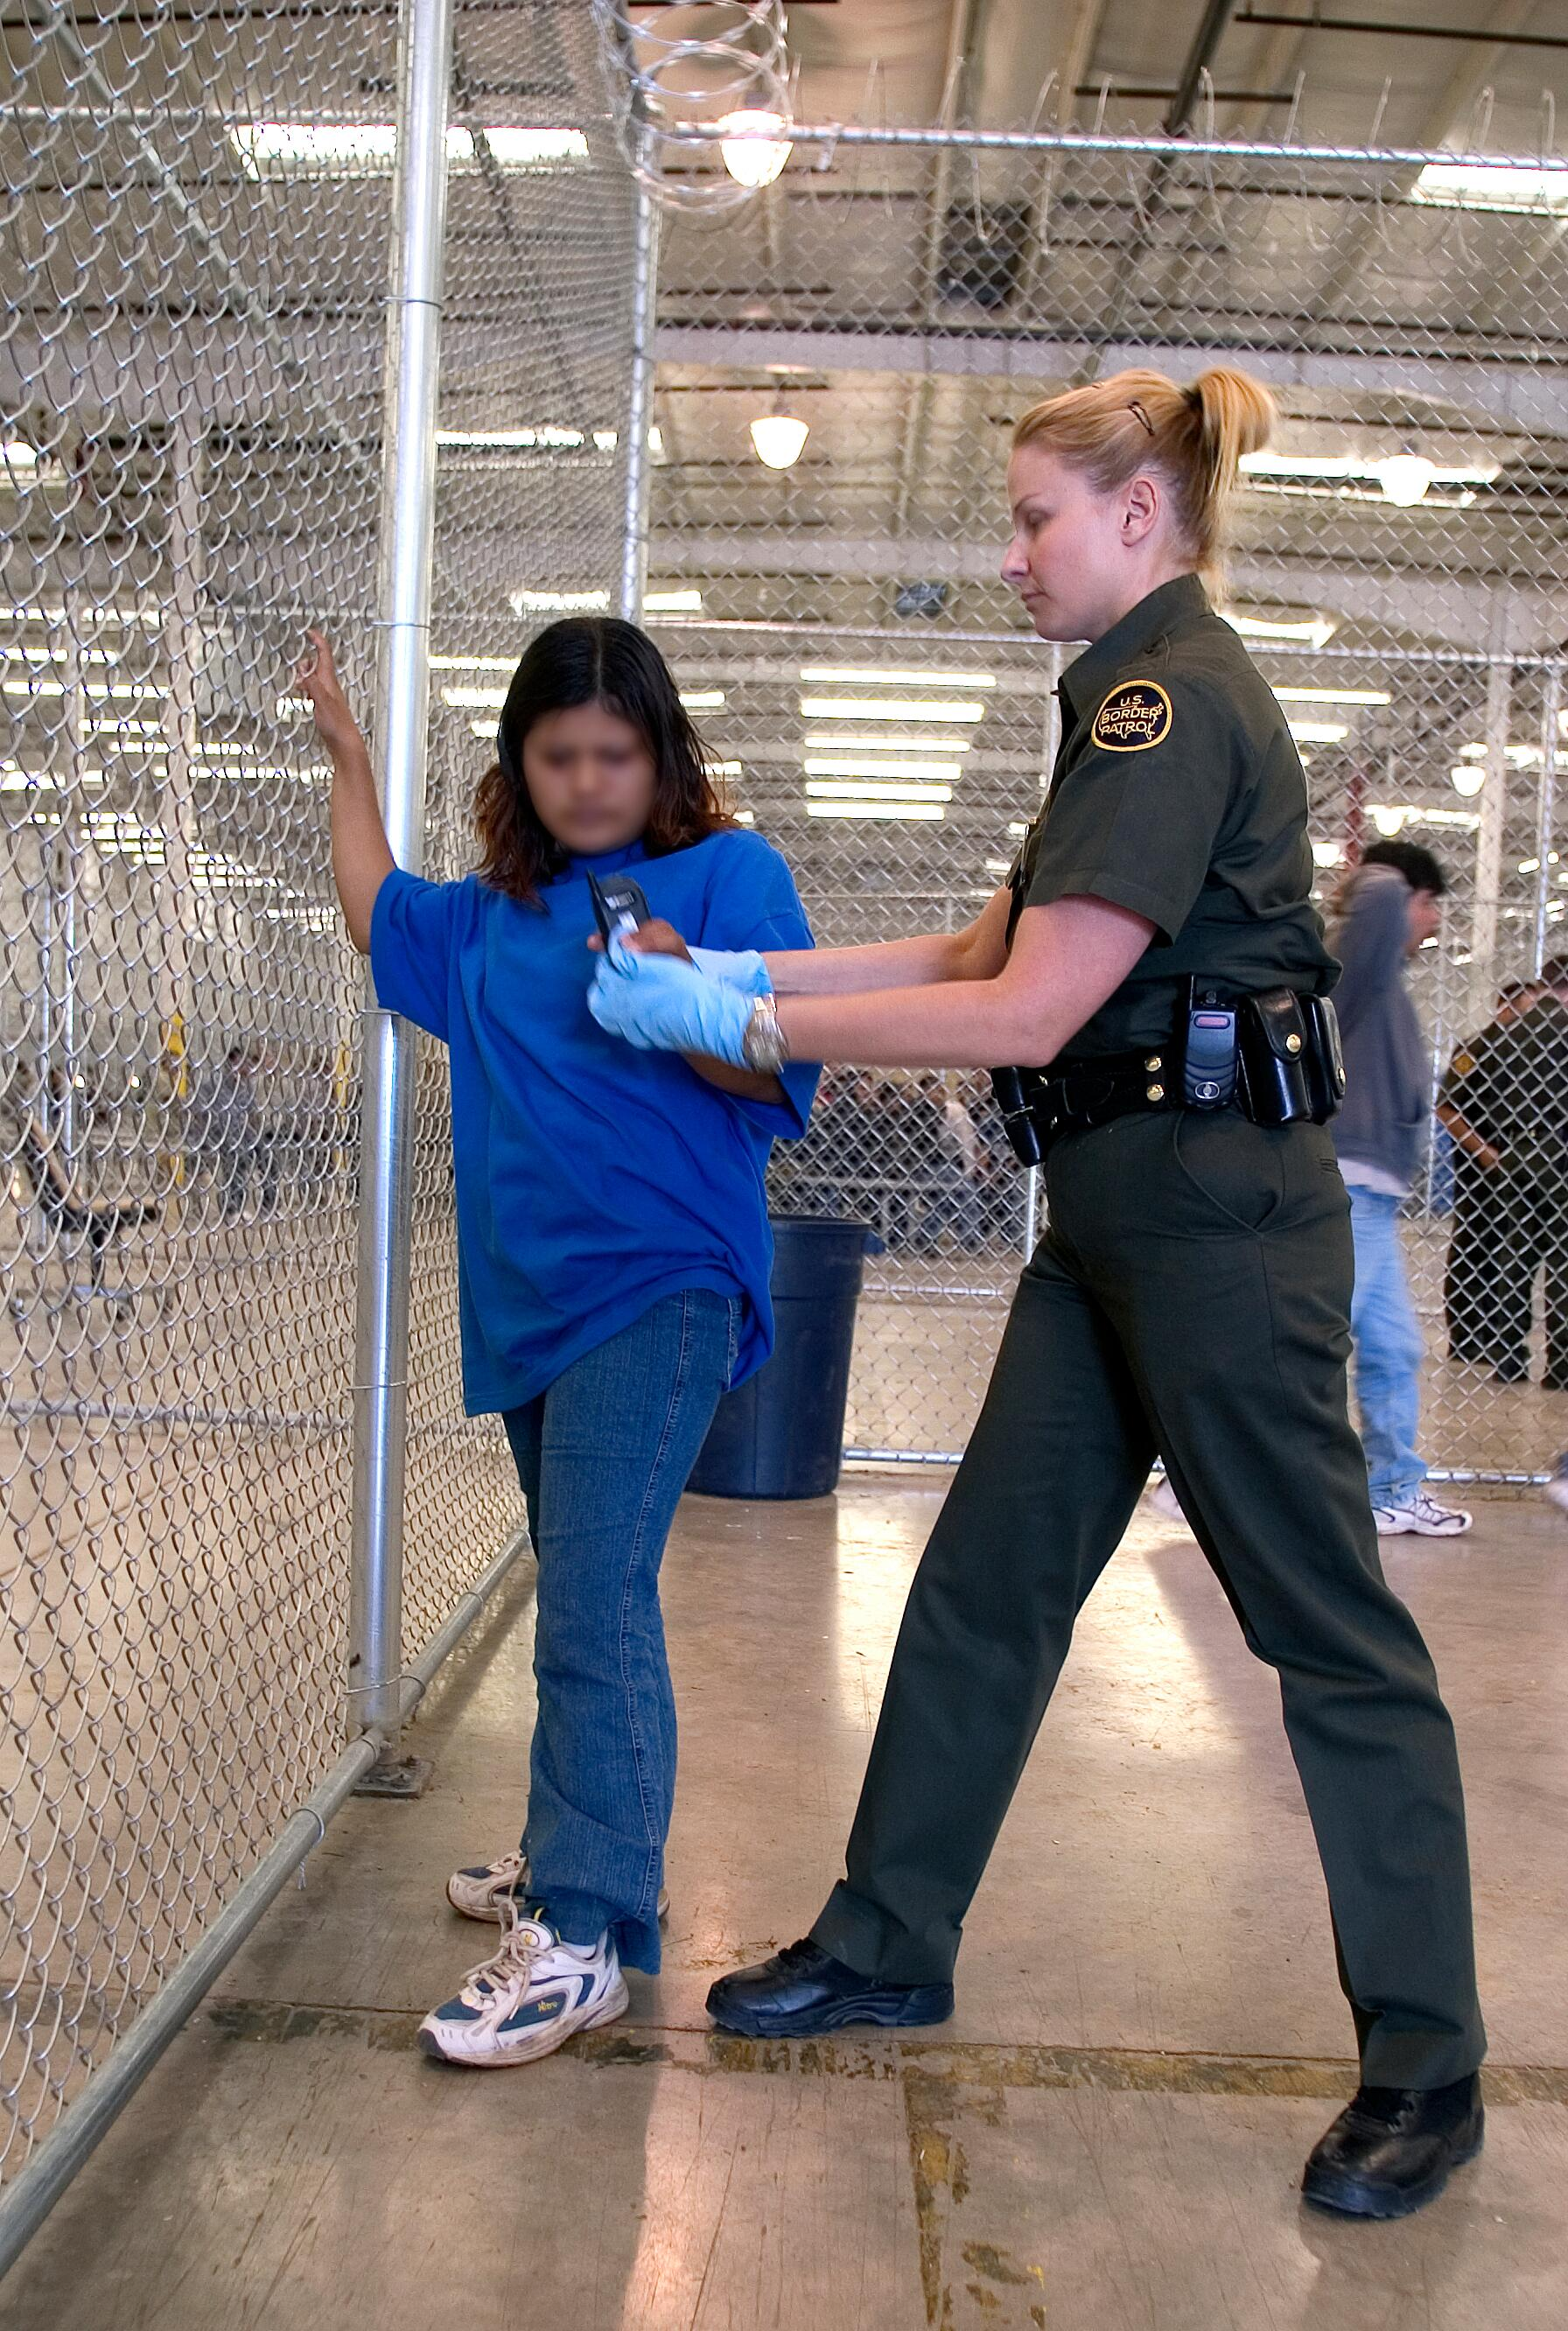 U.S. Border Patrol agent conducts a pat down of a female Mexican being placed in a holding facility.